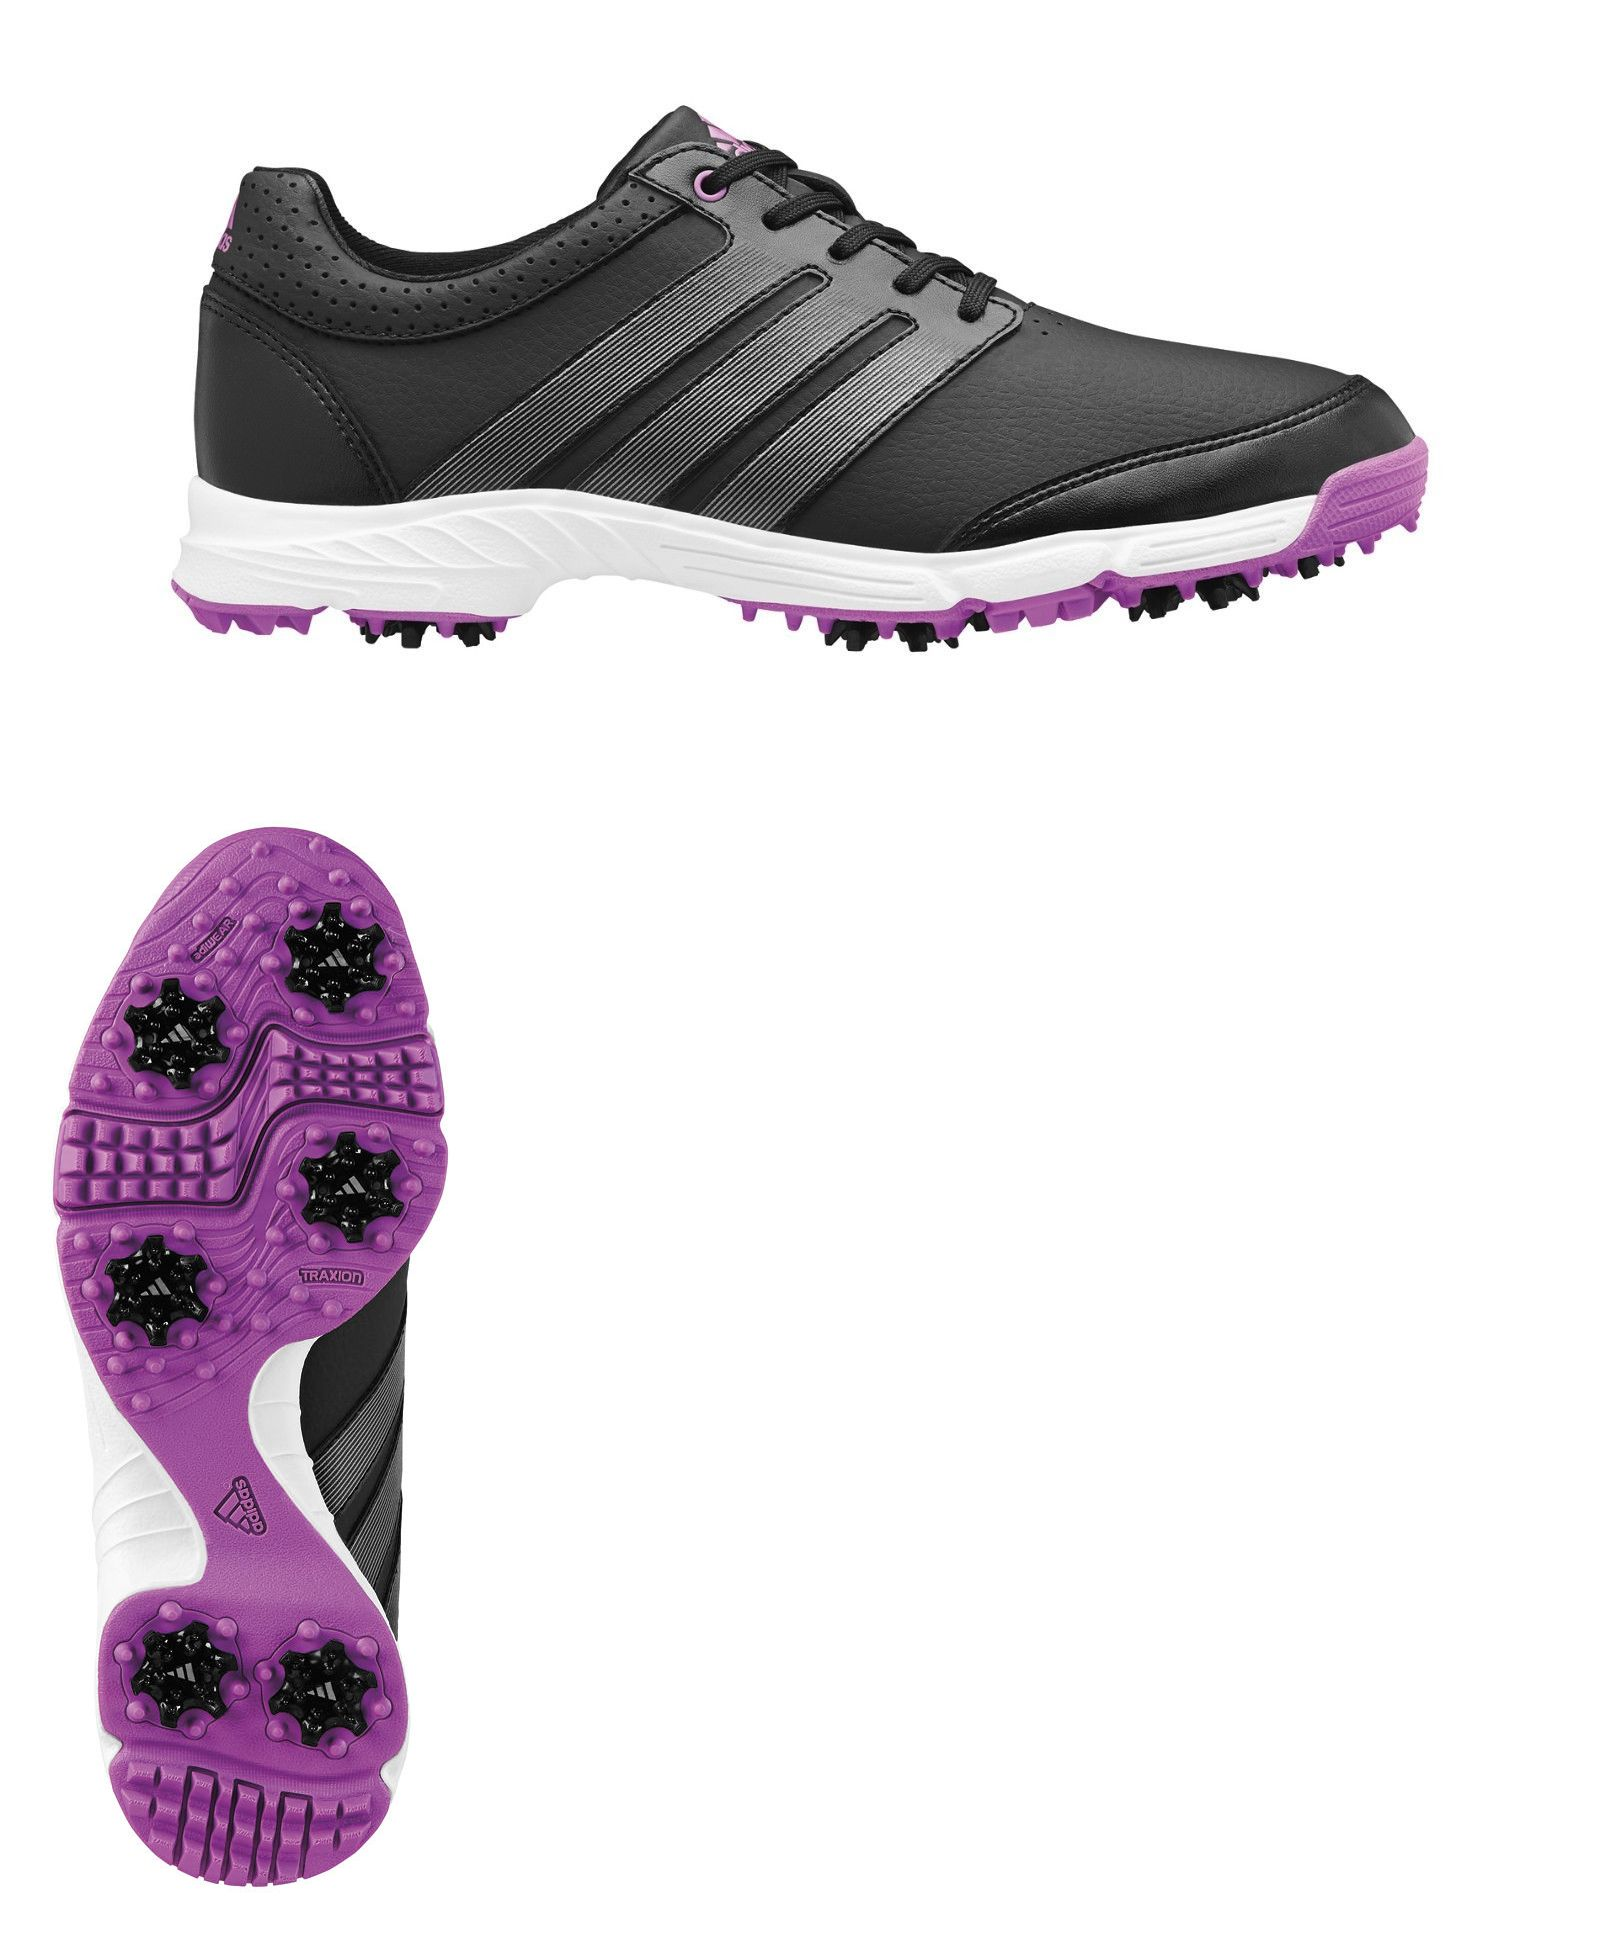 ec554f58deb Golf Shoes 181147  C O Womens Adidas Wresponsie Light Q47066 Blk Iron Pink Golf  Shoes 9